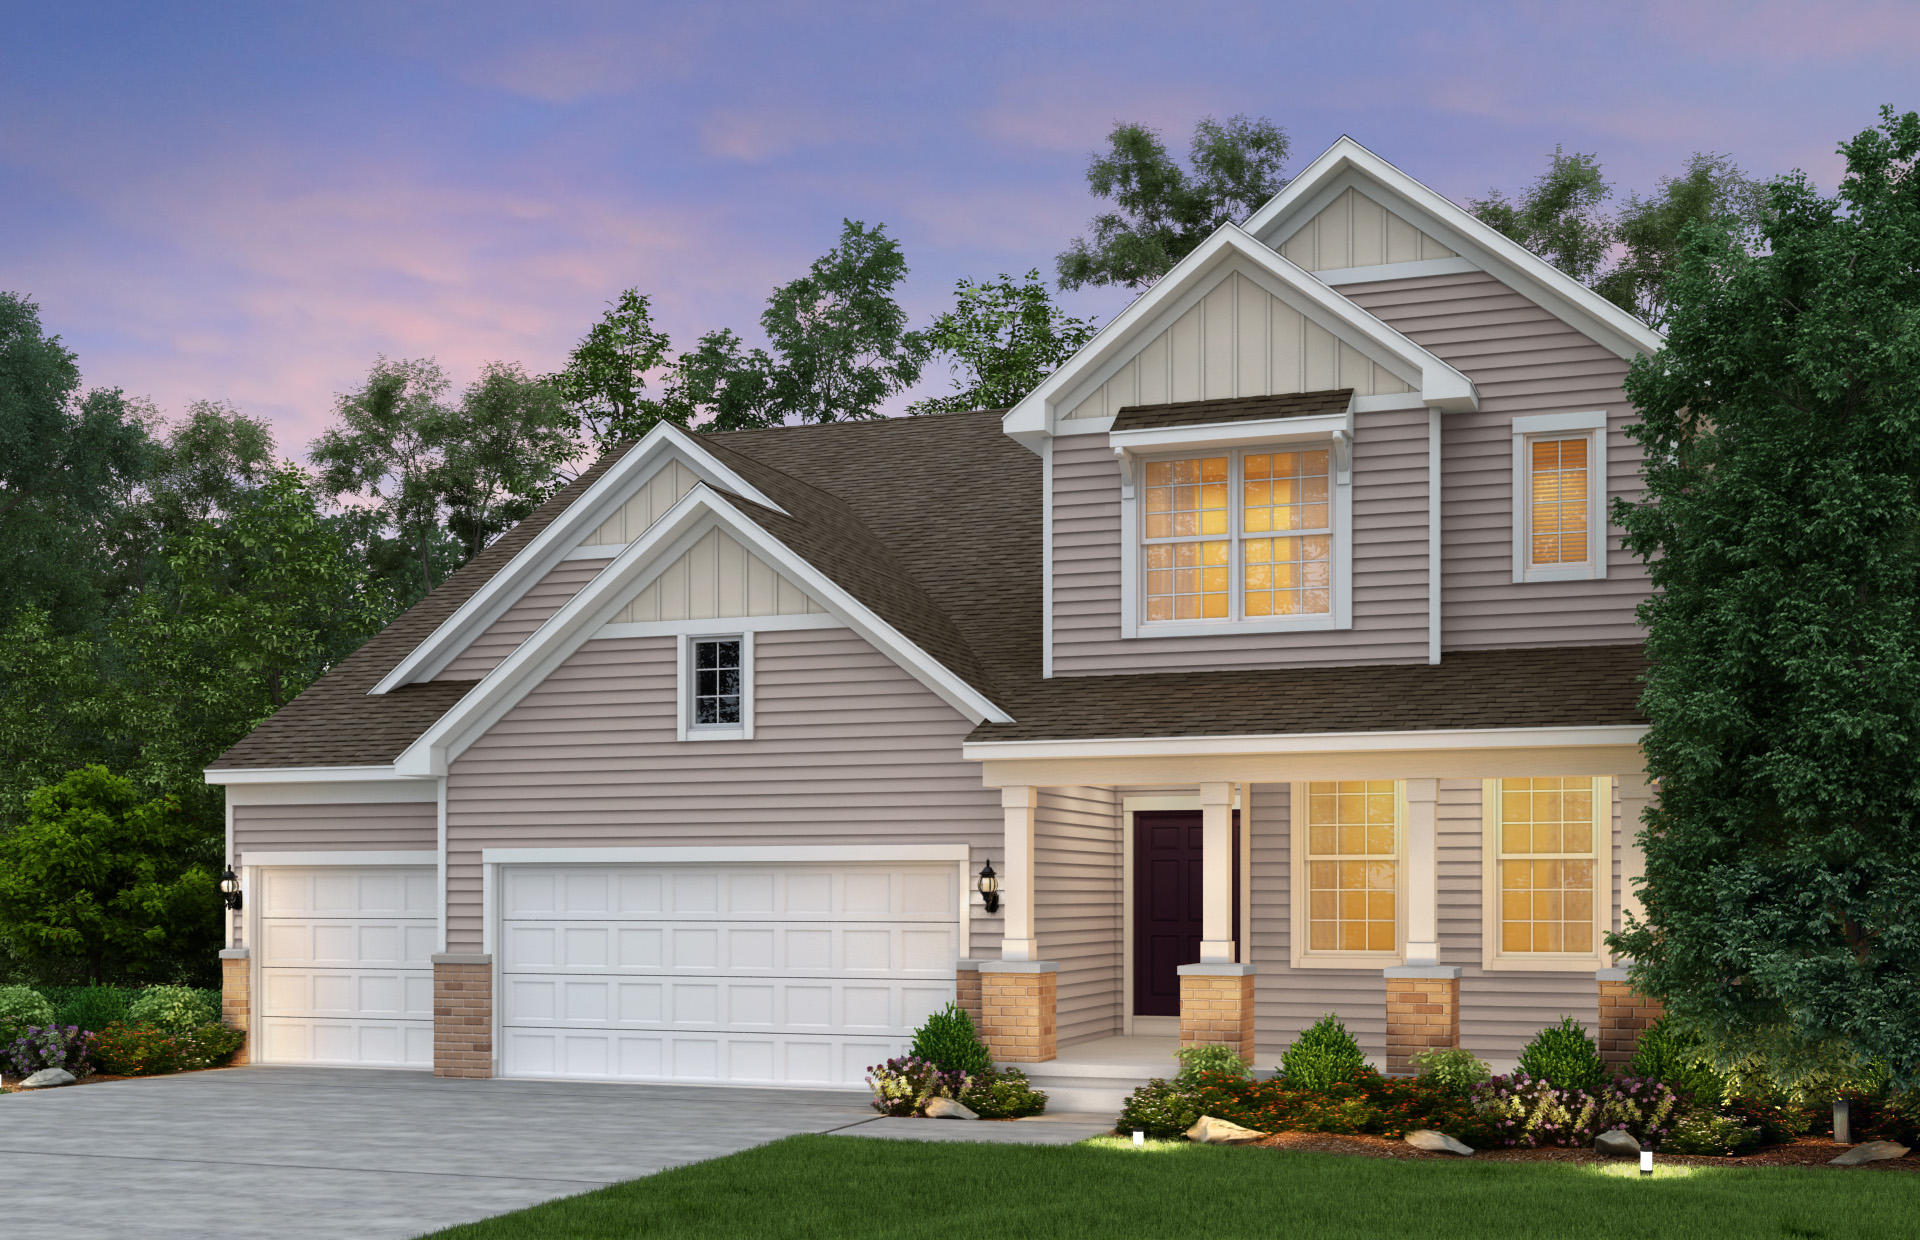 Finley Park by Pulte Homes image 0